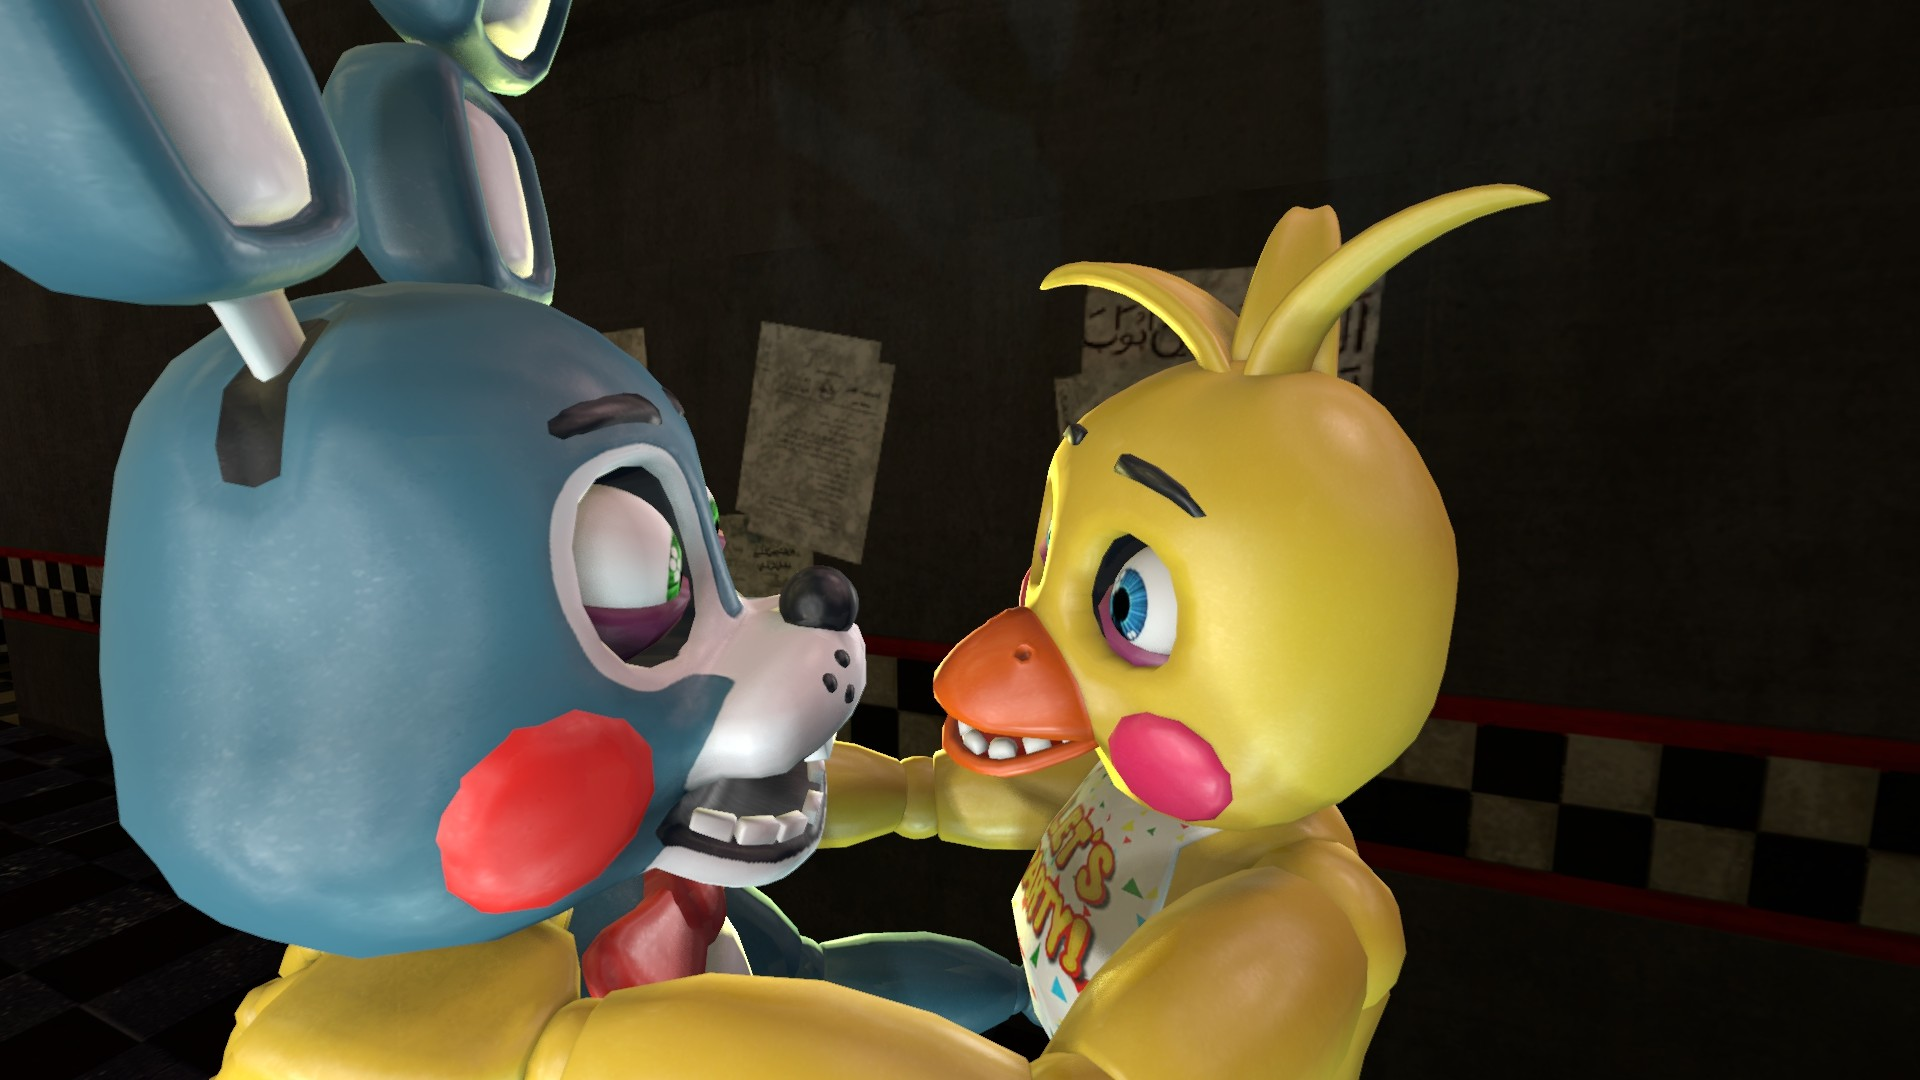 1920x1080 ... Toy Chica and Toy Bonnie by Mathieulebest